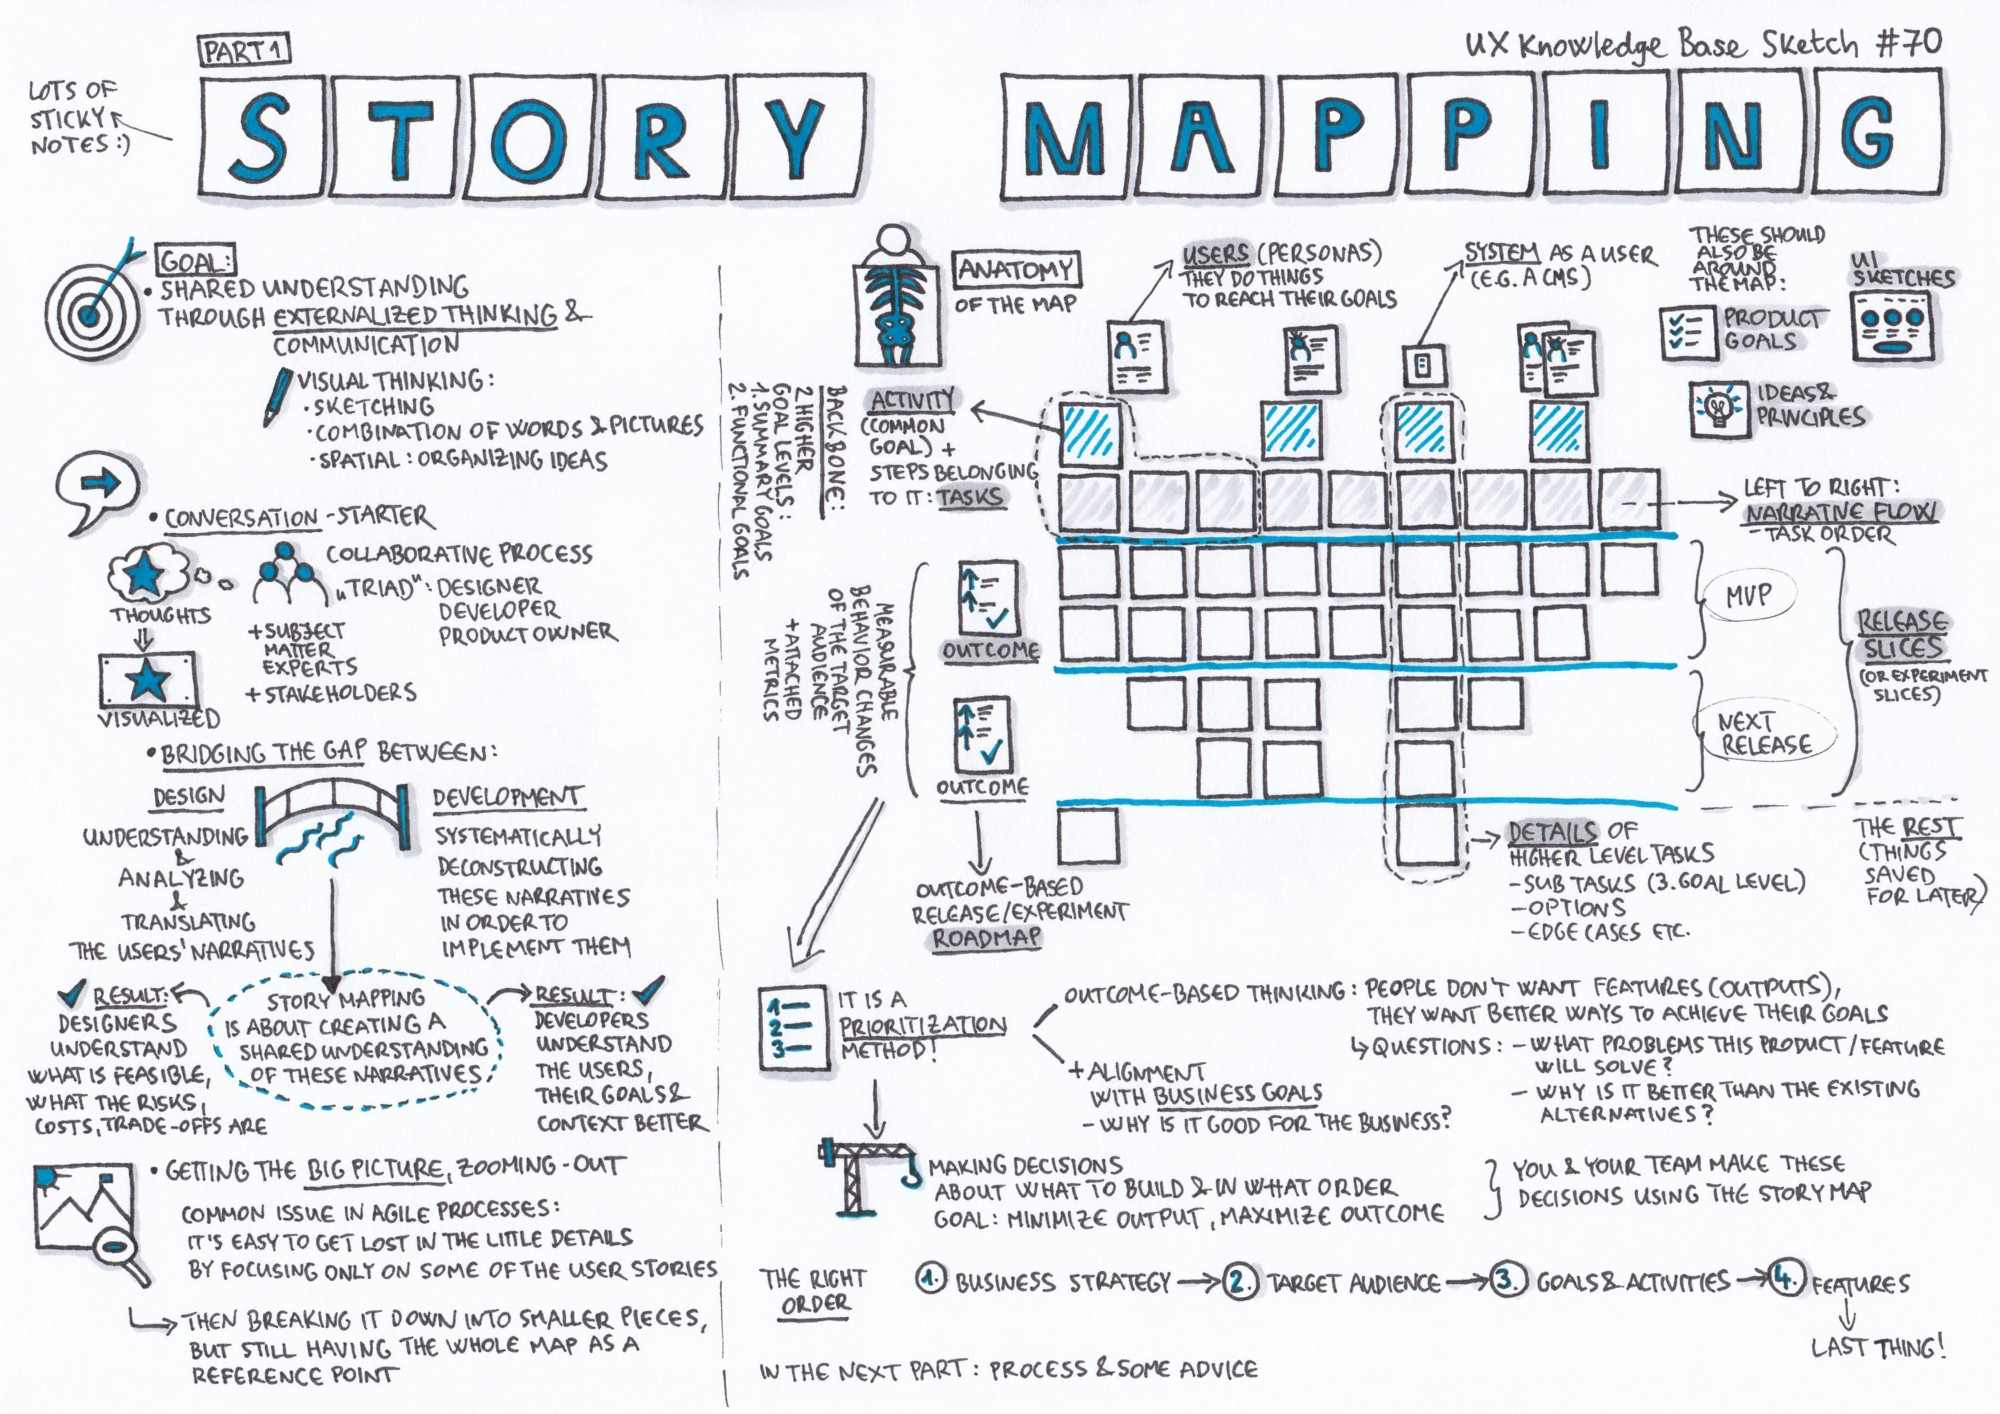 Story Mapping - Part 1 – UX Knowledge Base Sketch